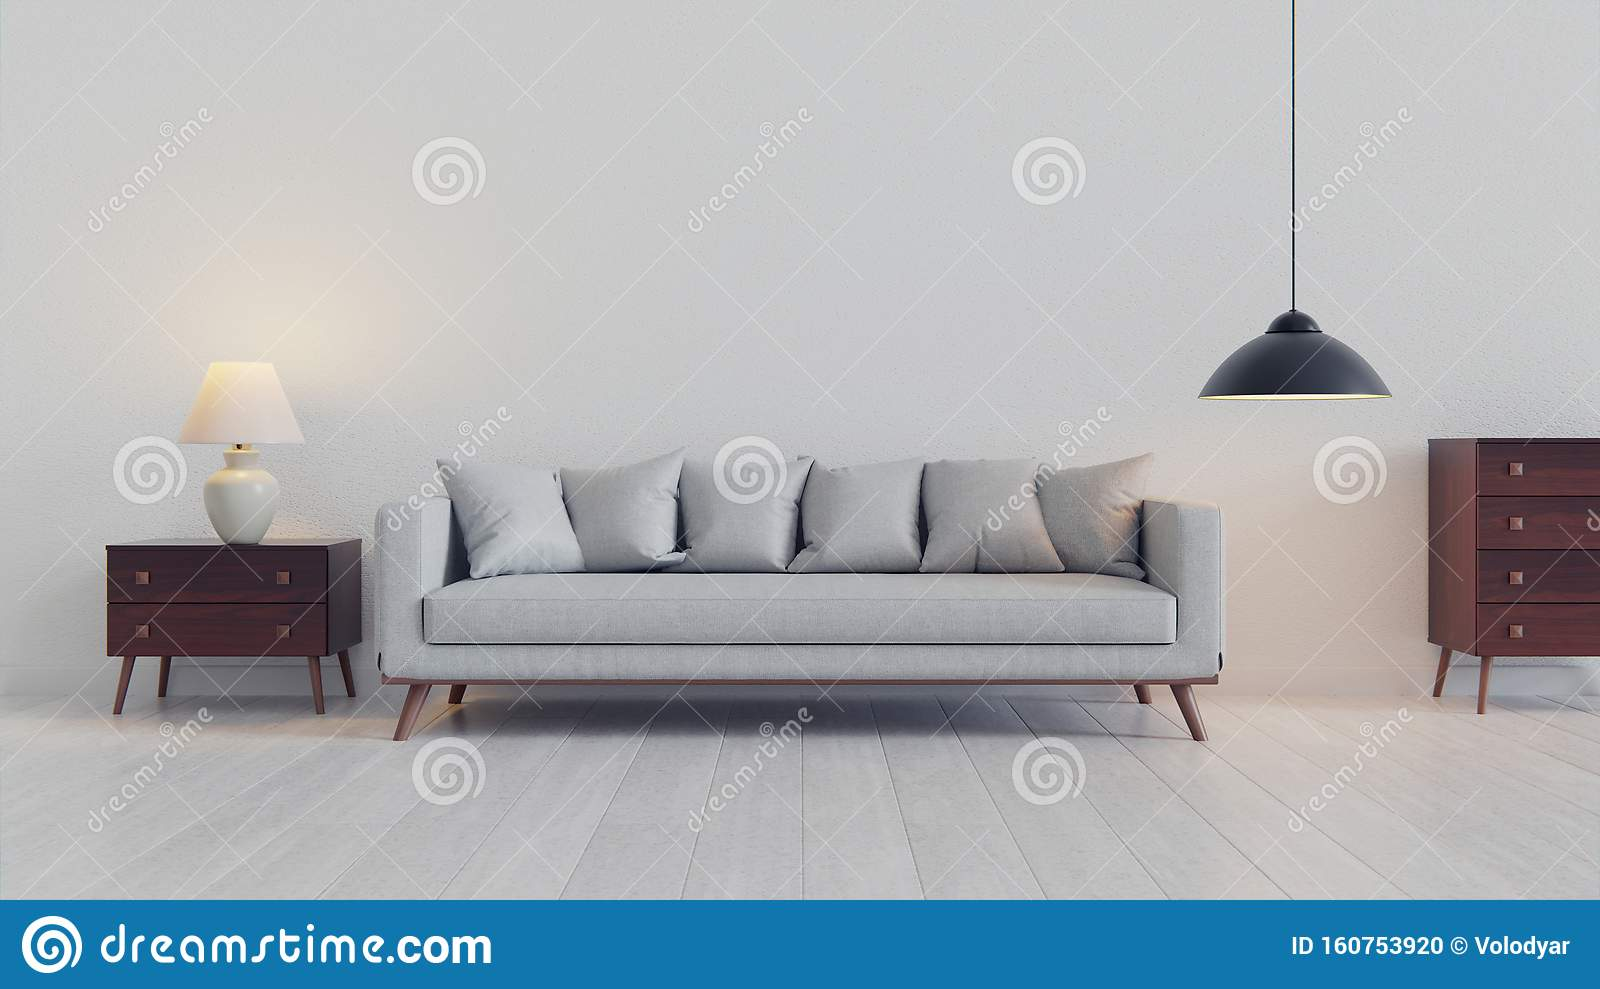 Pretty Simple Decor Of Living Room With Blue Sofa And Light Blue Wall Stock Illustration Illustration Of Interior Advertising 160753920